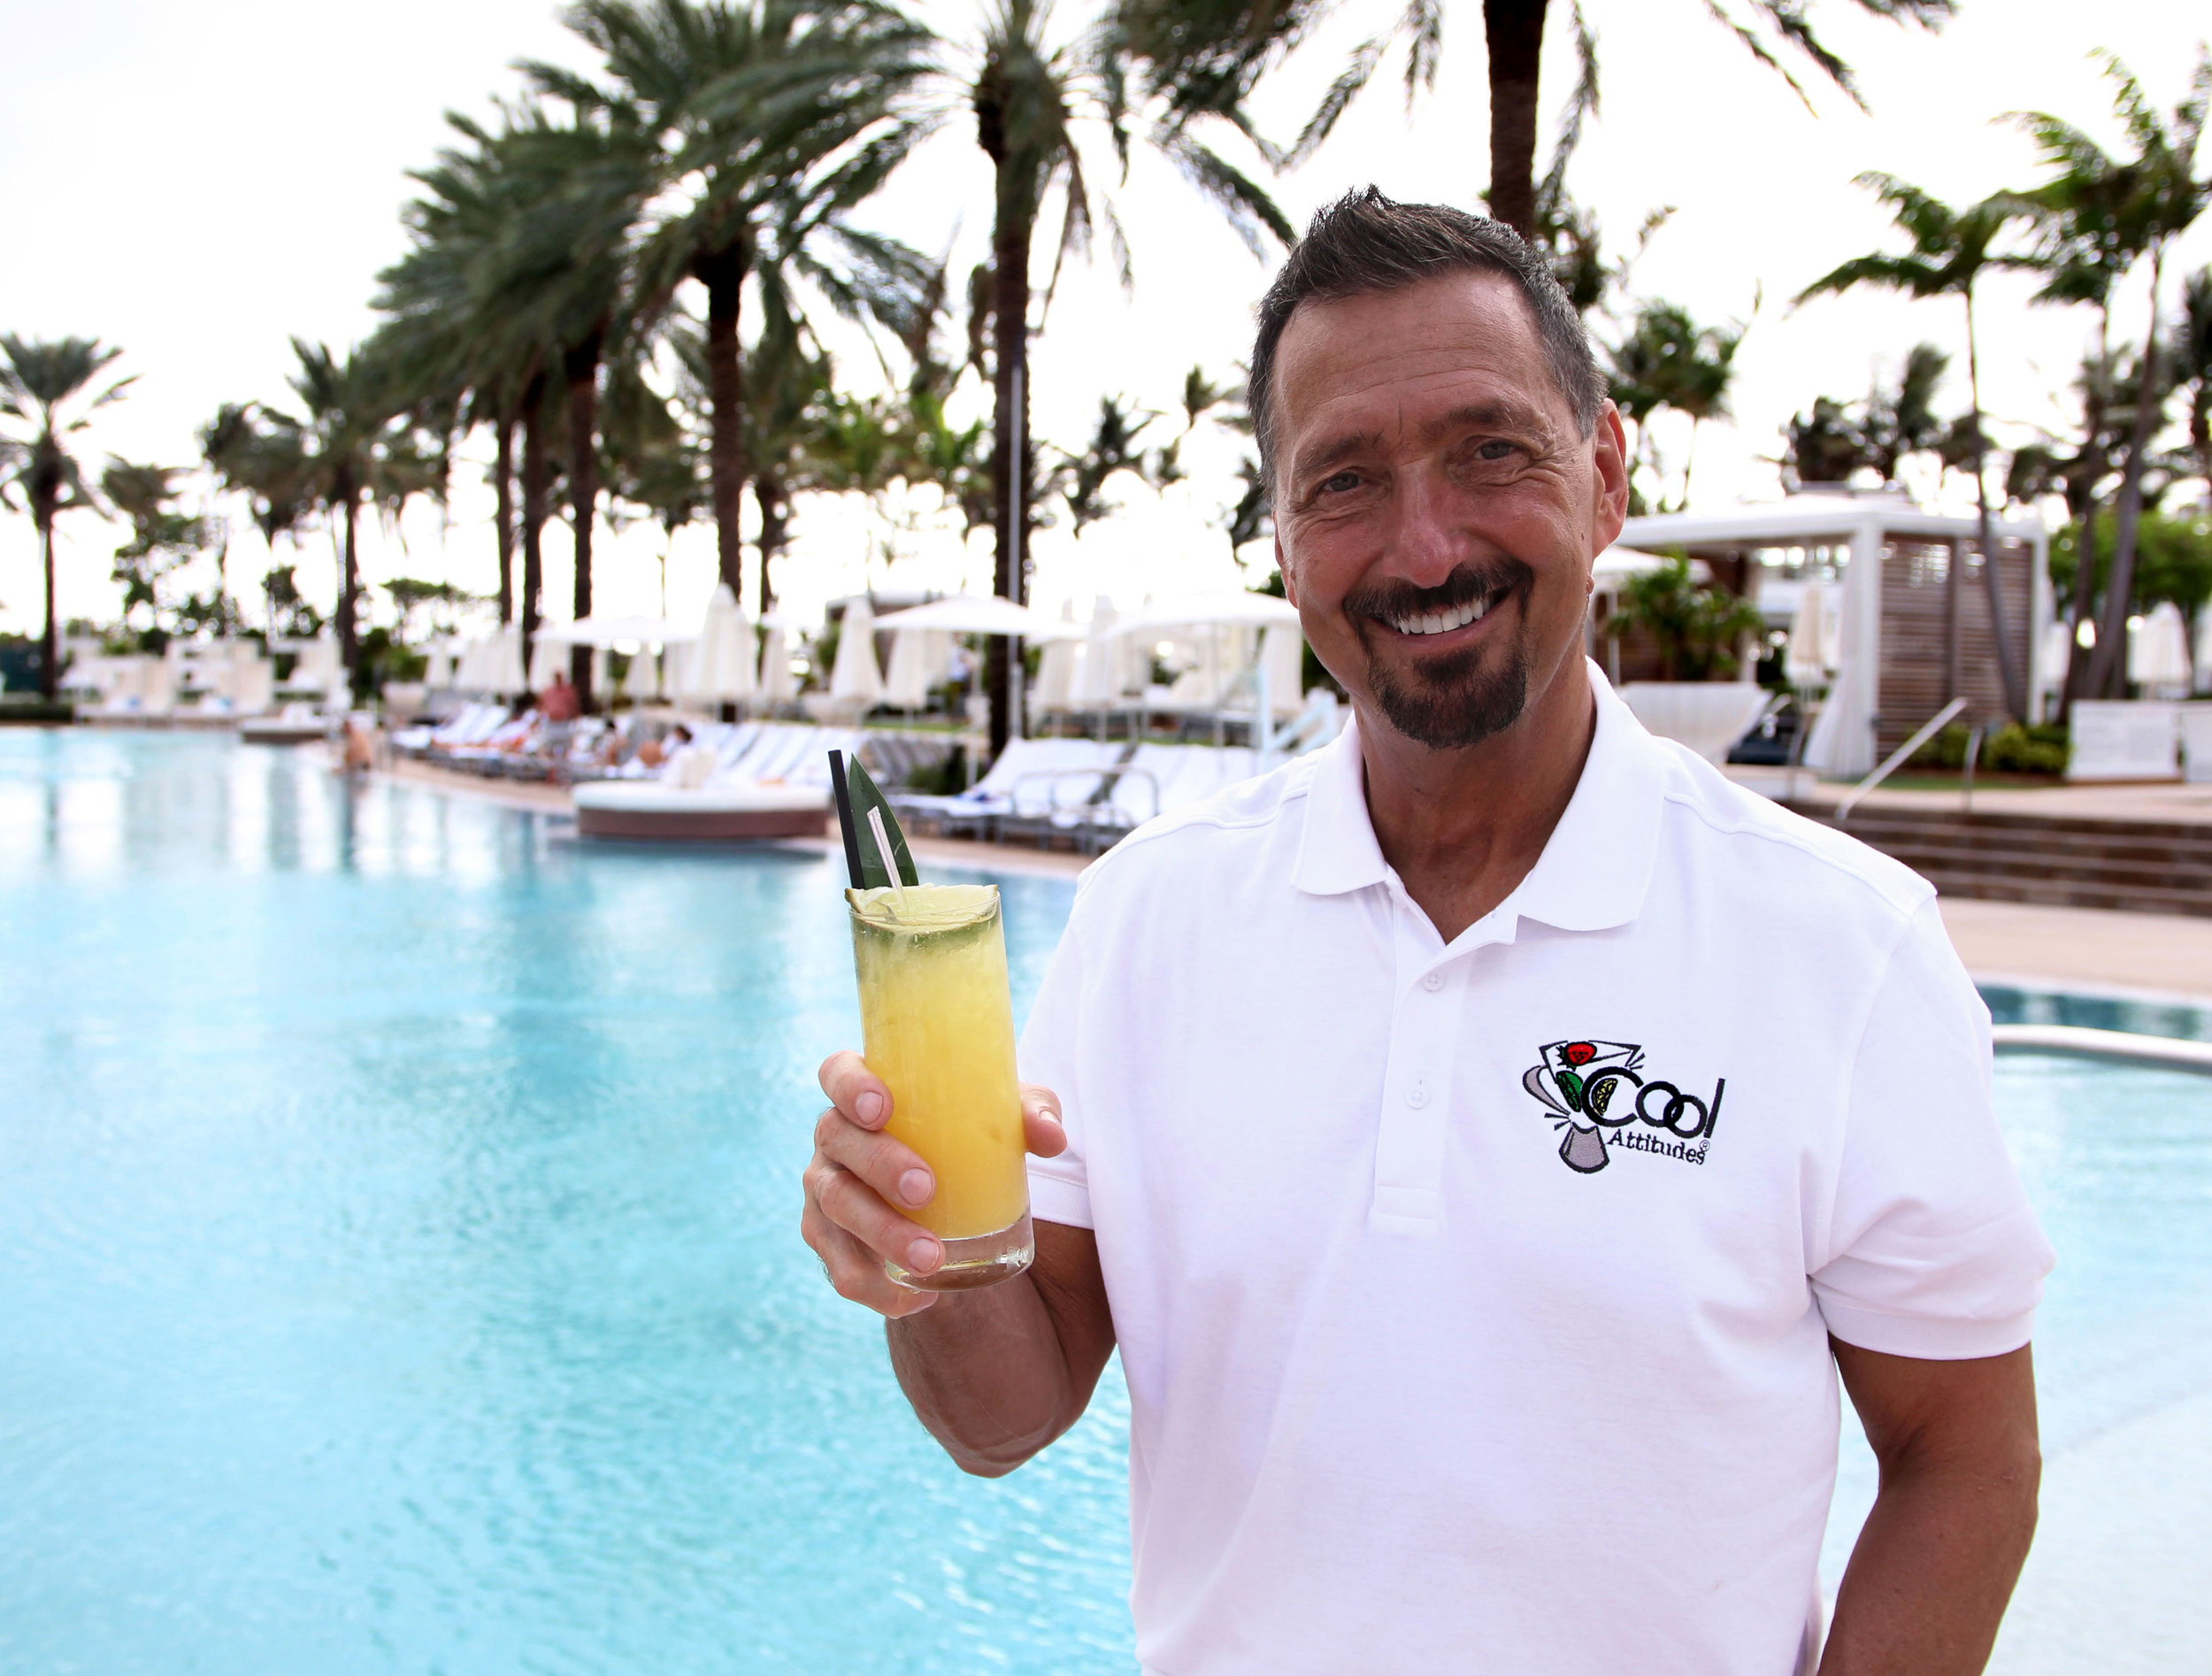 CS Group CEO Rich Davis toasts his new customer Fontainebleau Hotel in Miami, FL